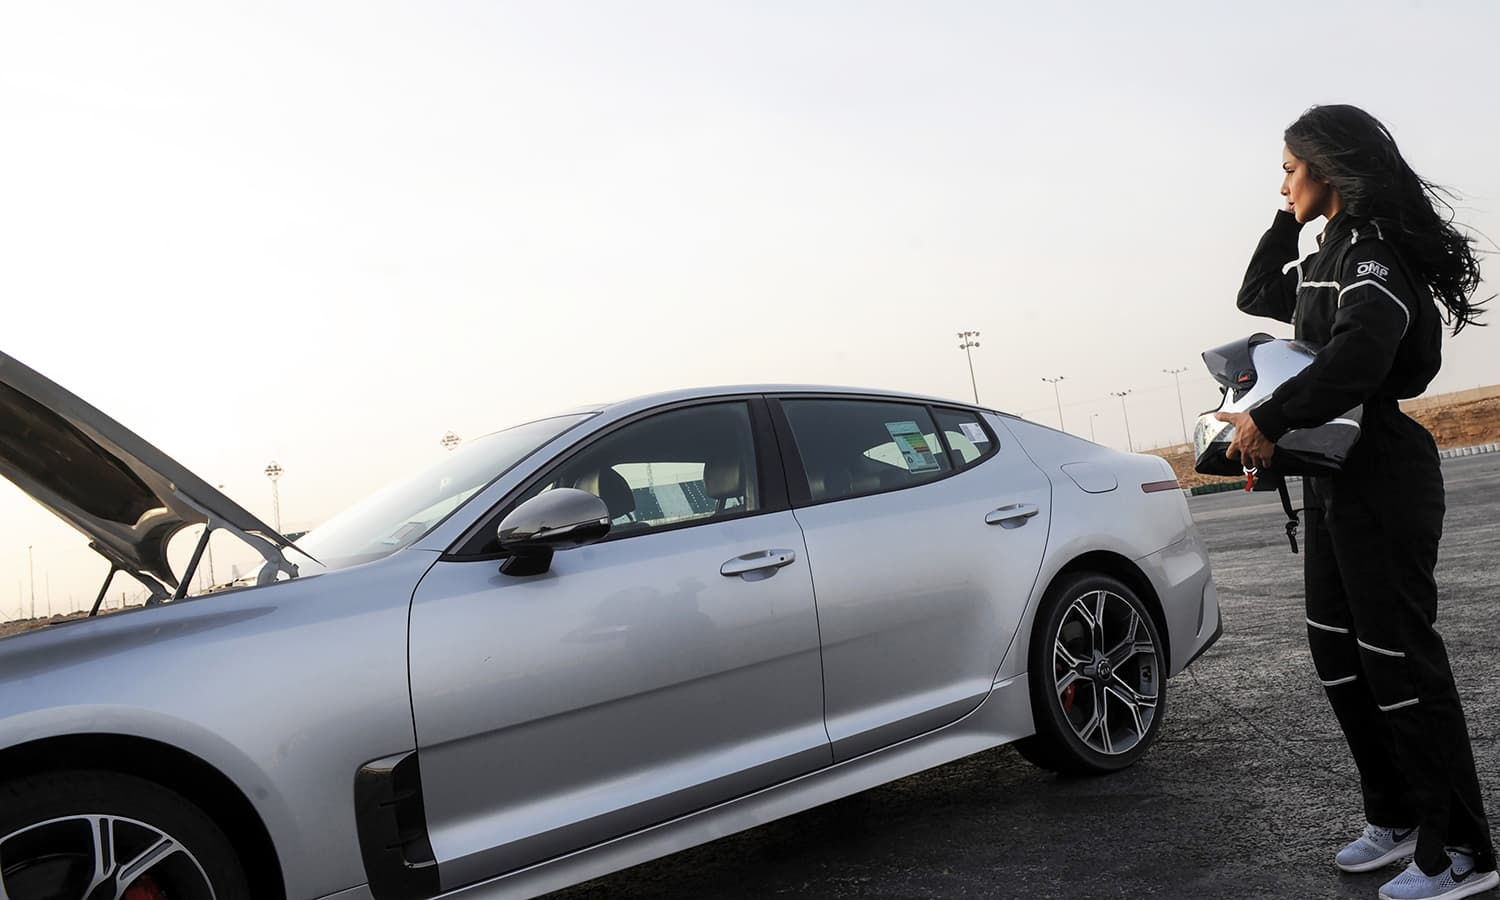 Rana Almimoni stands with her helmet next to her car on the track in Dirab motor park outside Riyadh. — AFP